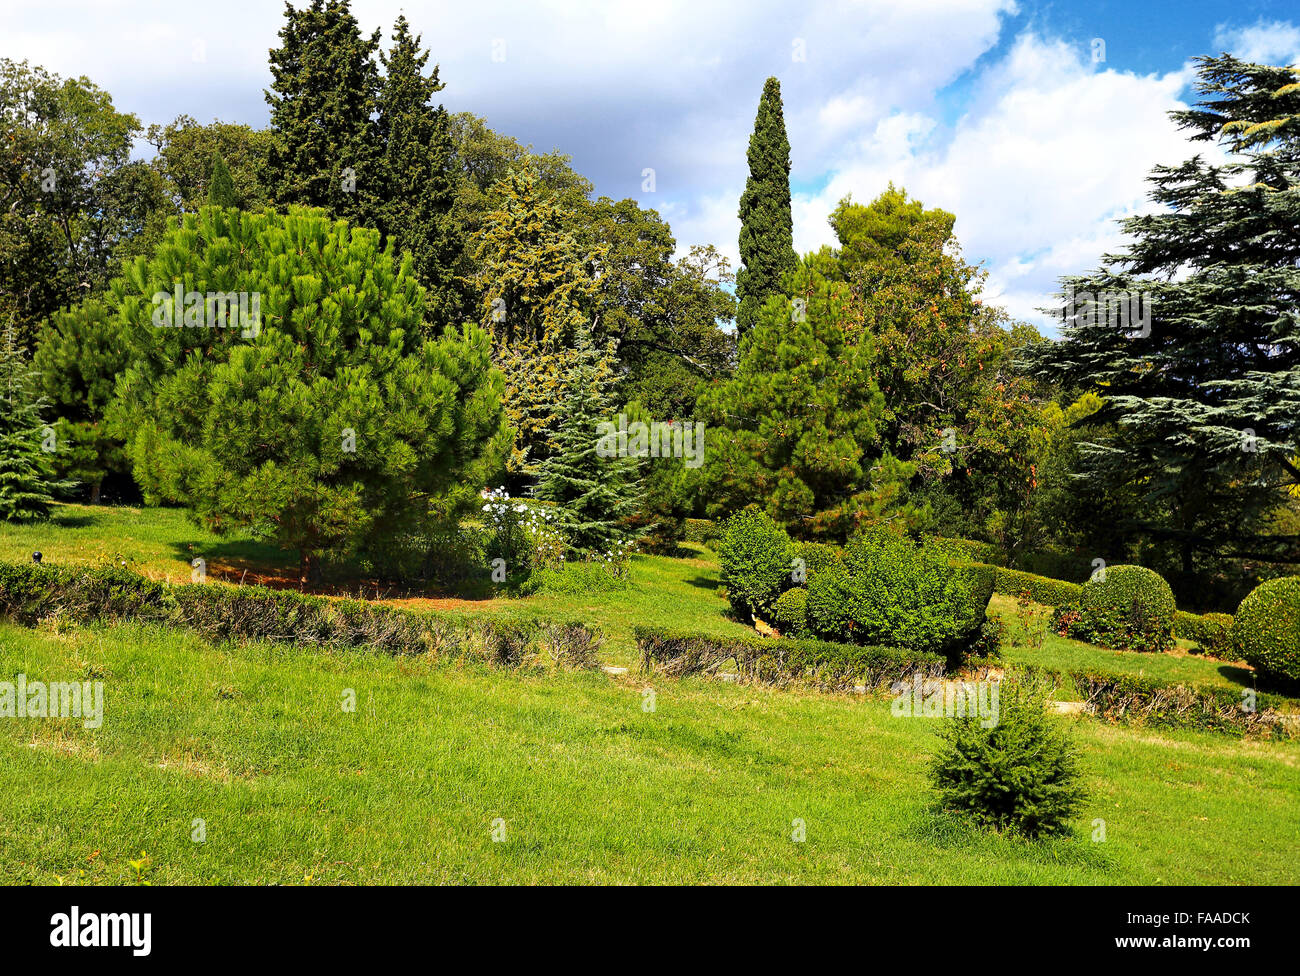 Trees, bushea, cypress trees  and other plants in the subtropical park - Stock Image